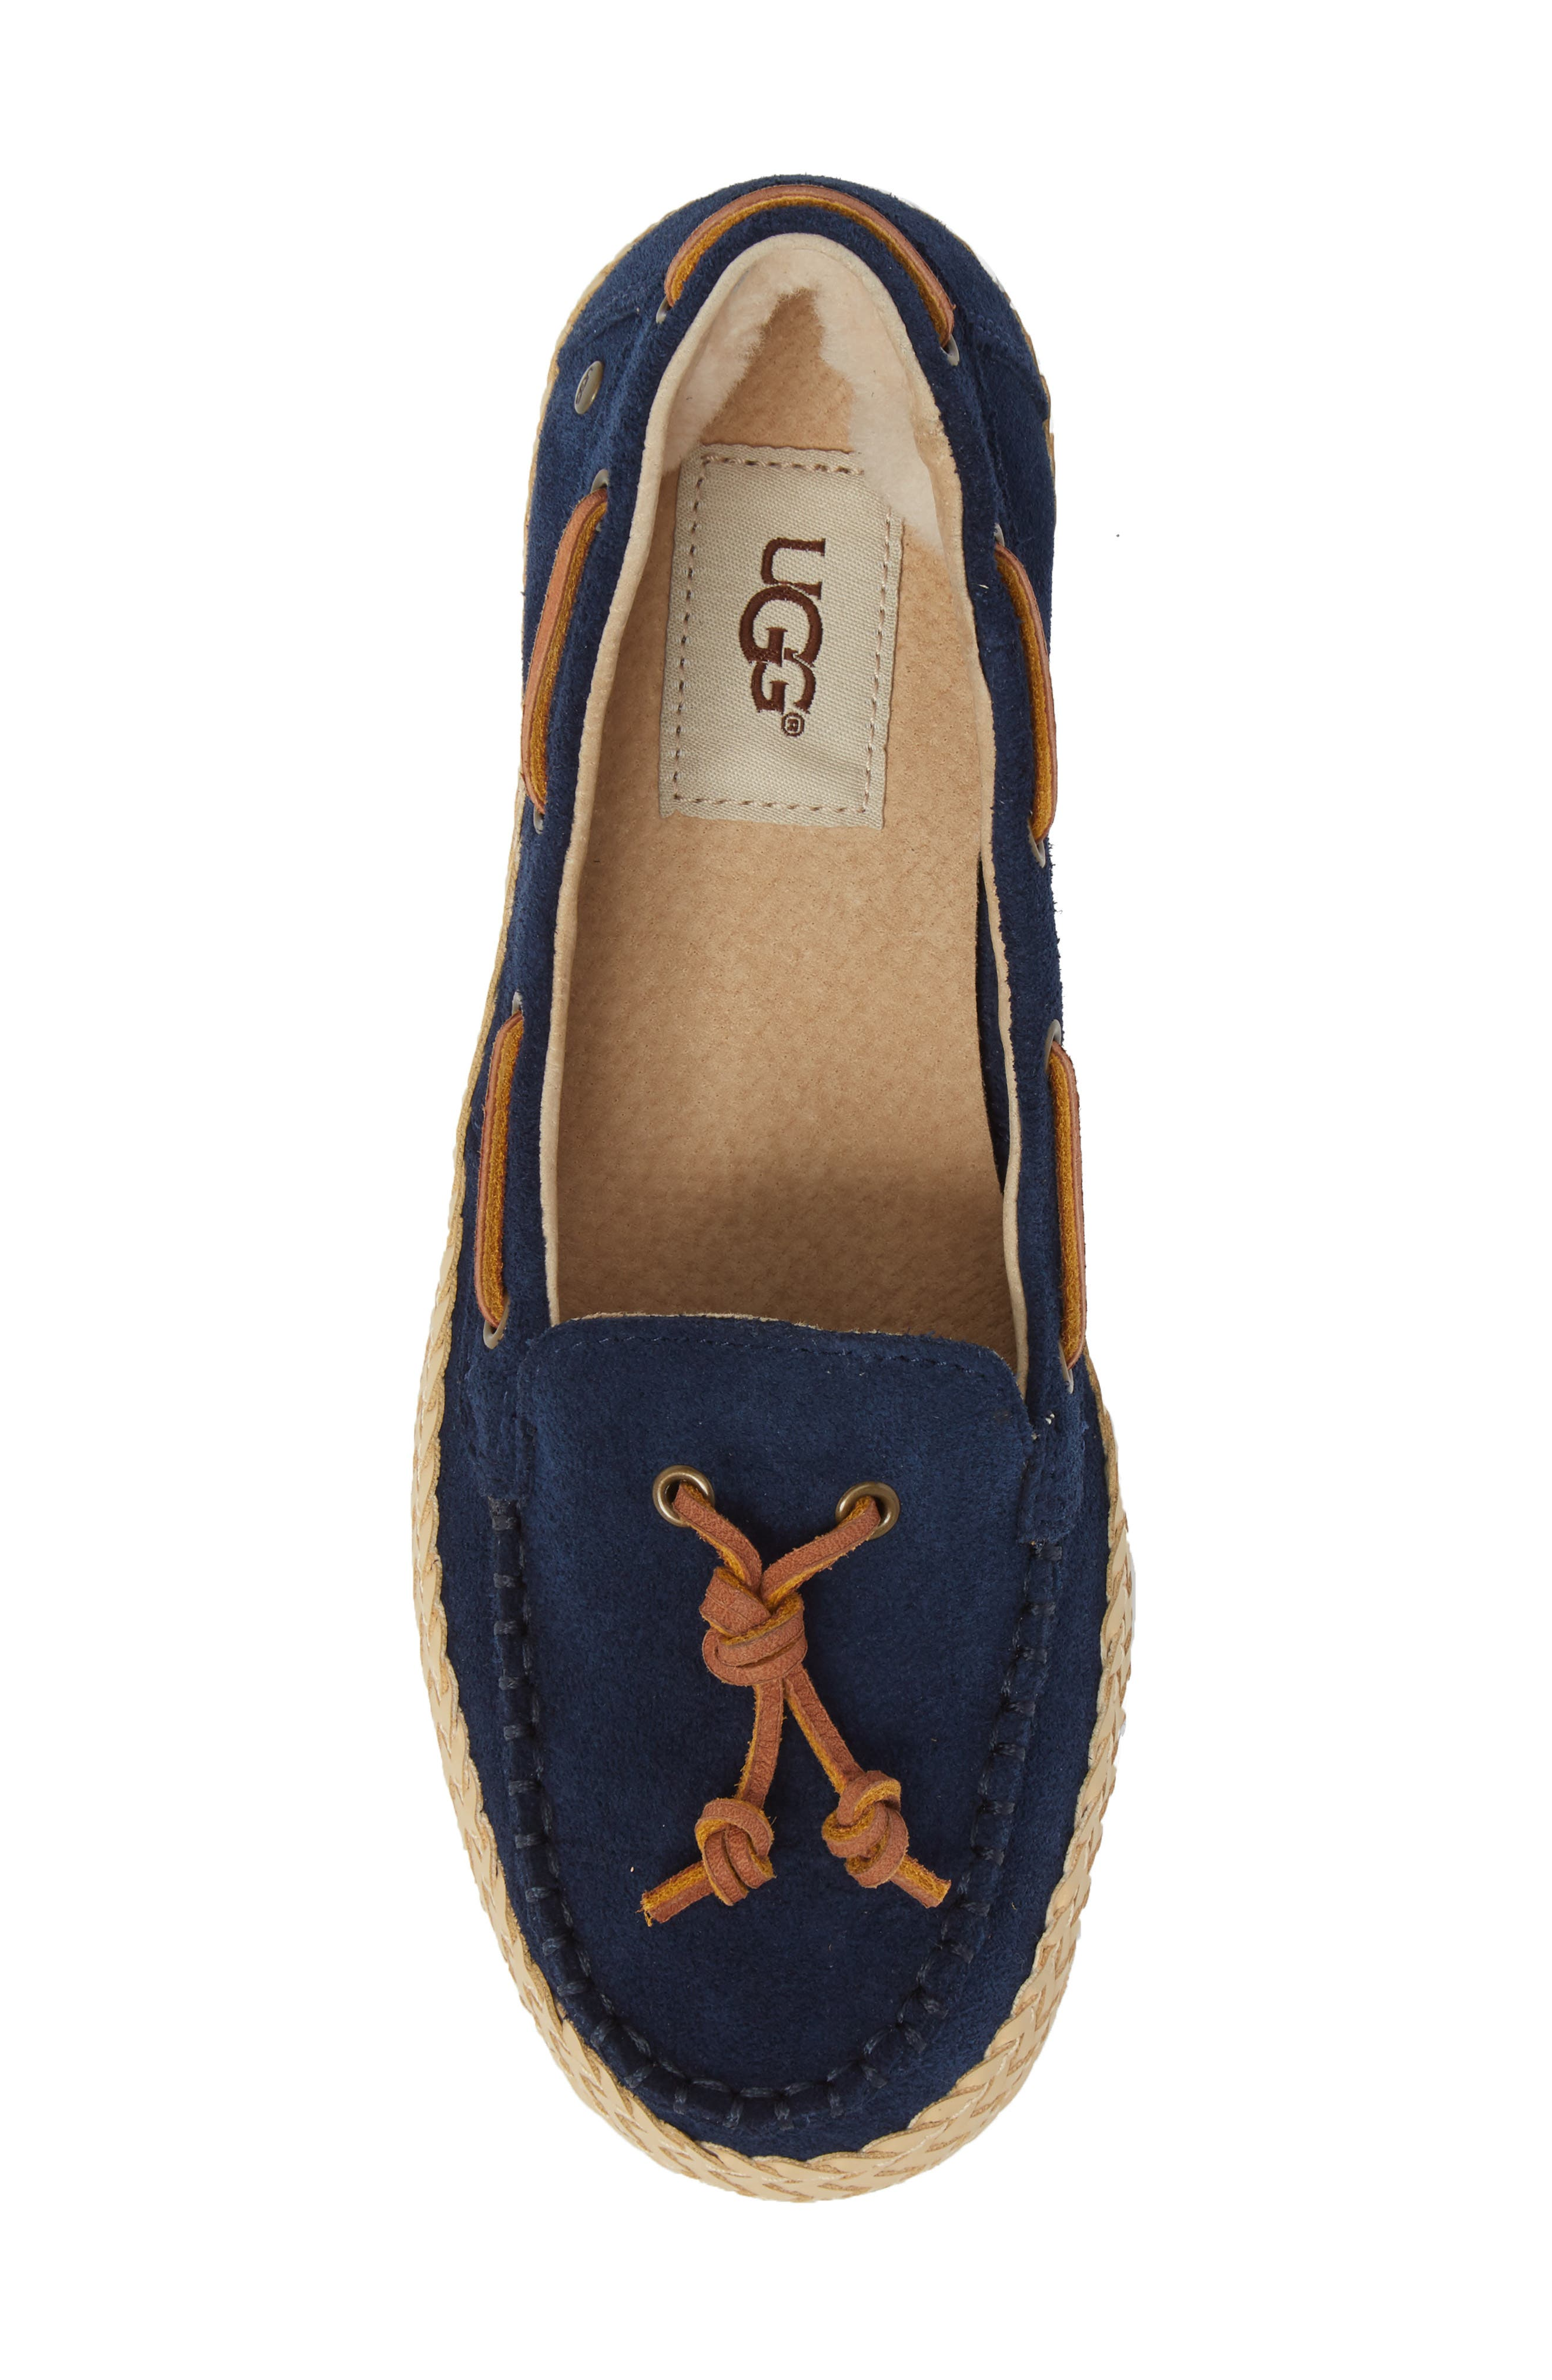 Channtal Loafer,                             Alternate thumbnail 5, color,                             Navy Suede